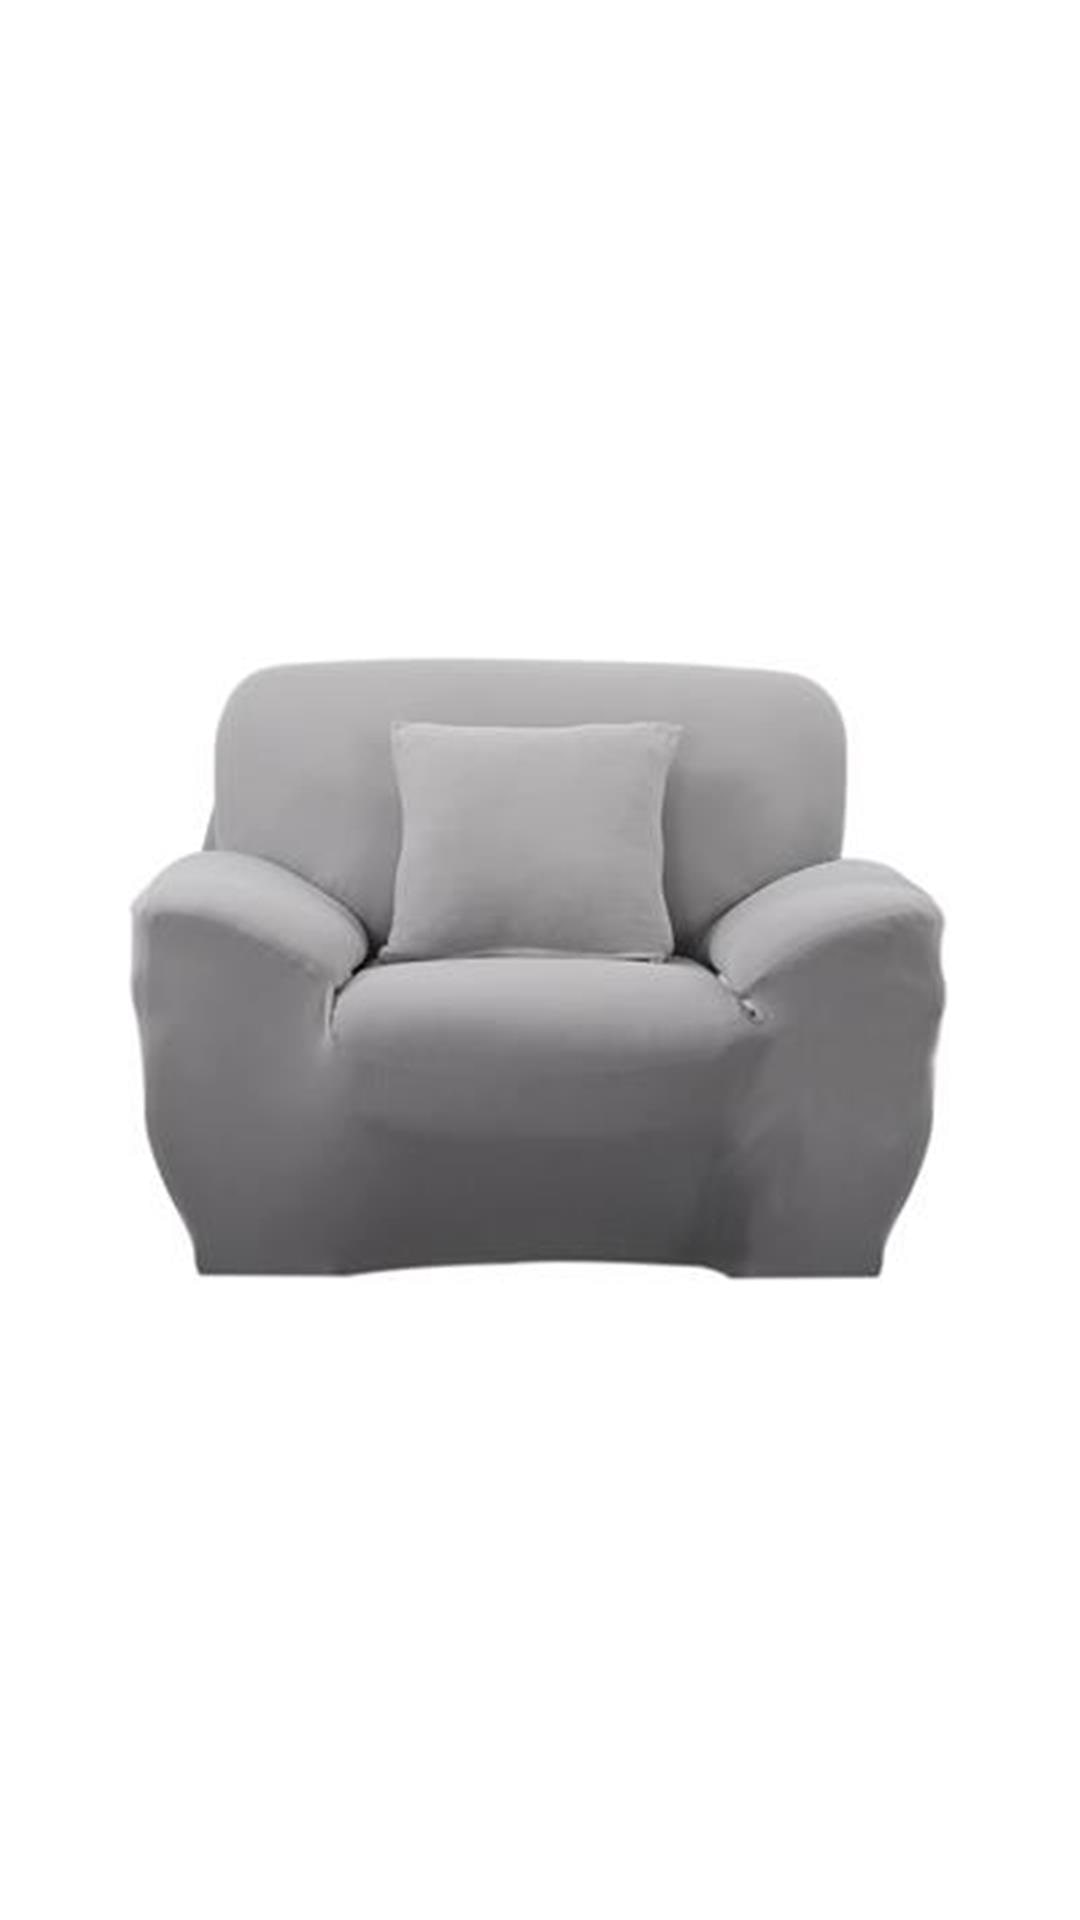 single couch chair cover chairs for seniors buy magideal spandex stretch sofa seat slipcover case home decor grey